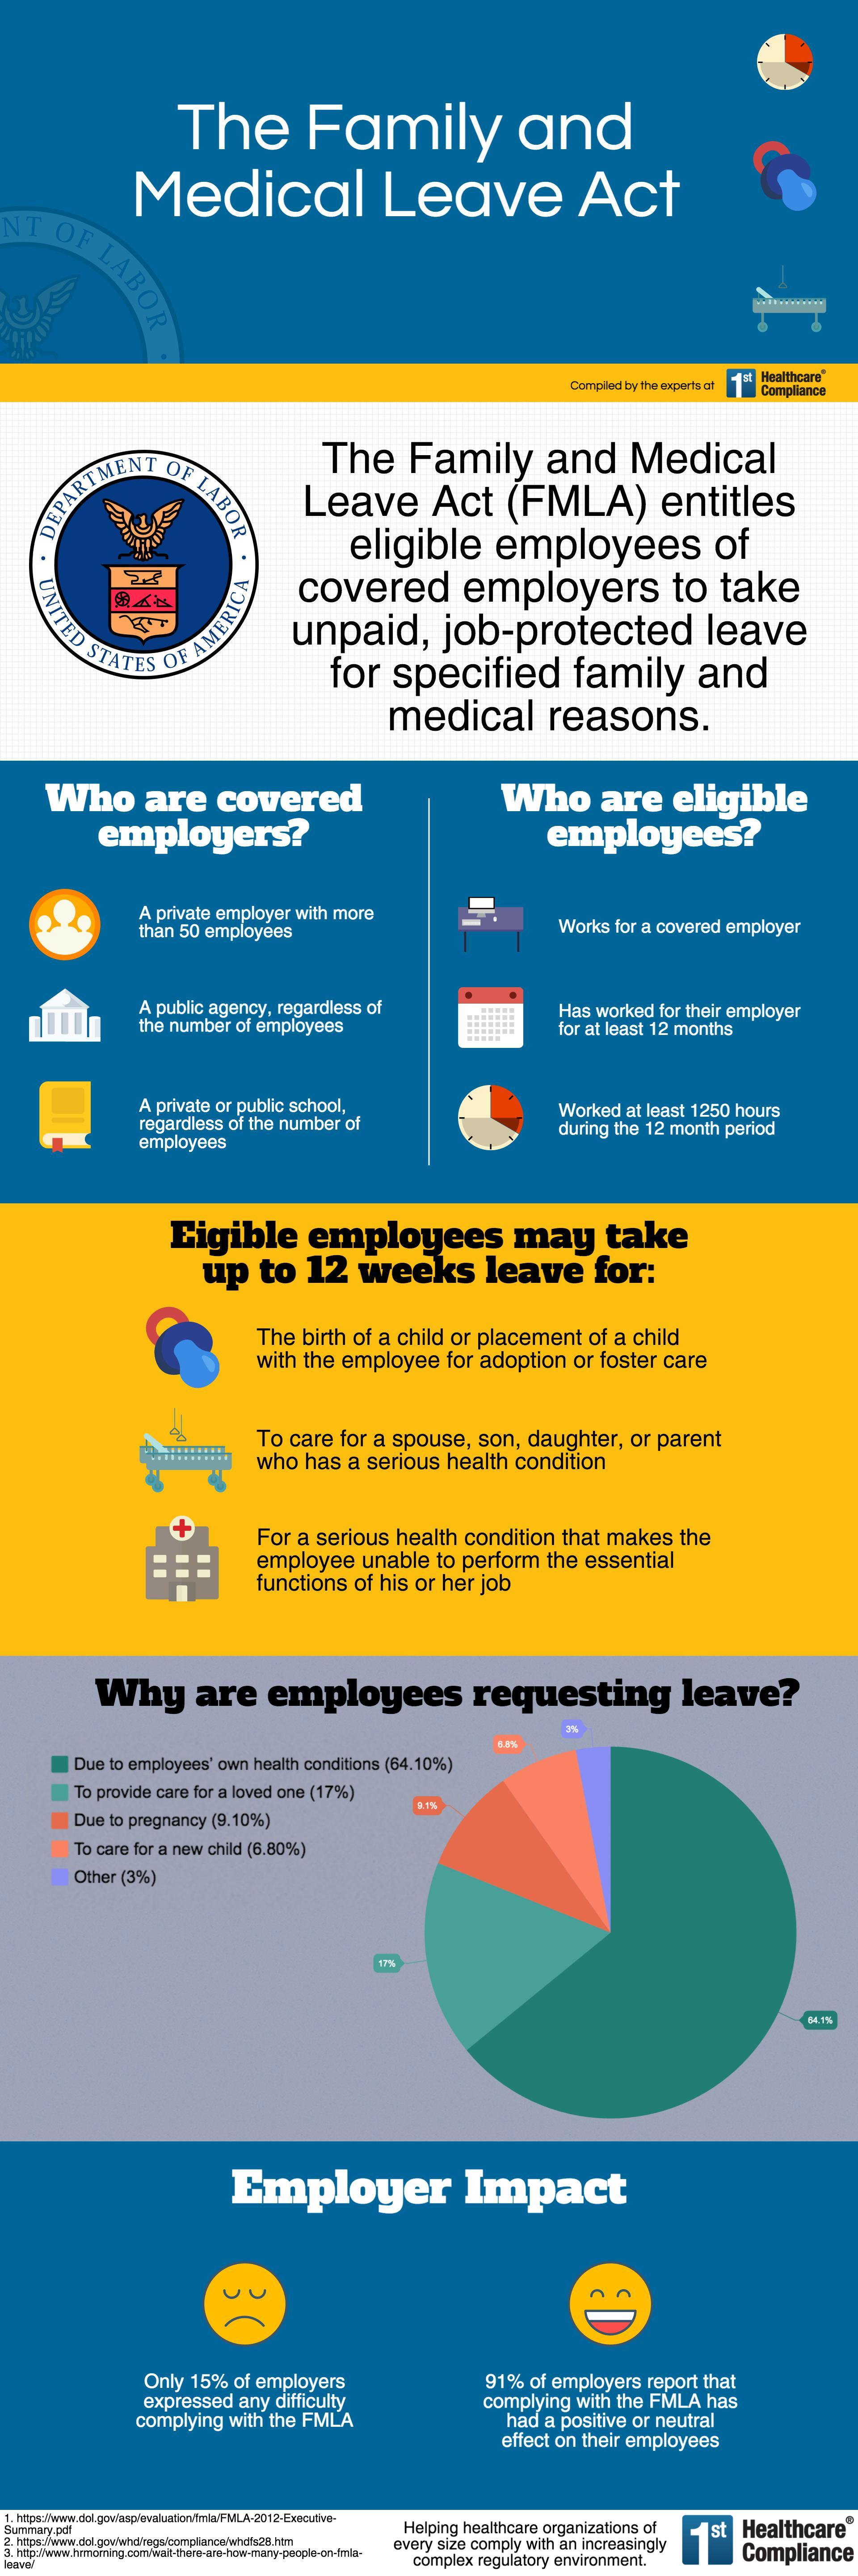 fmla paper 2 Office of management and budget - human resource management - the family and medical leave act state of delaware - department of human resources / human resource management search: this site family and medical leave act (fmla) faq site footer.